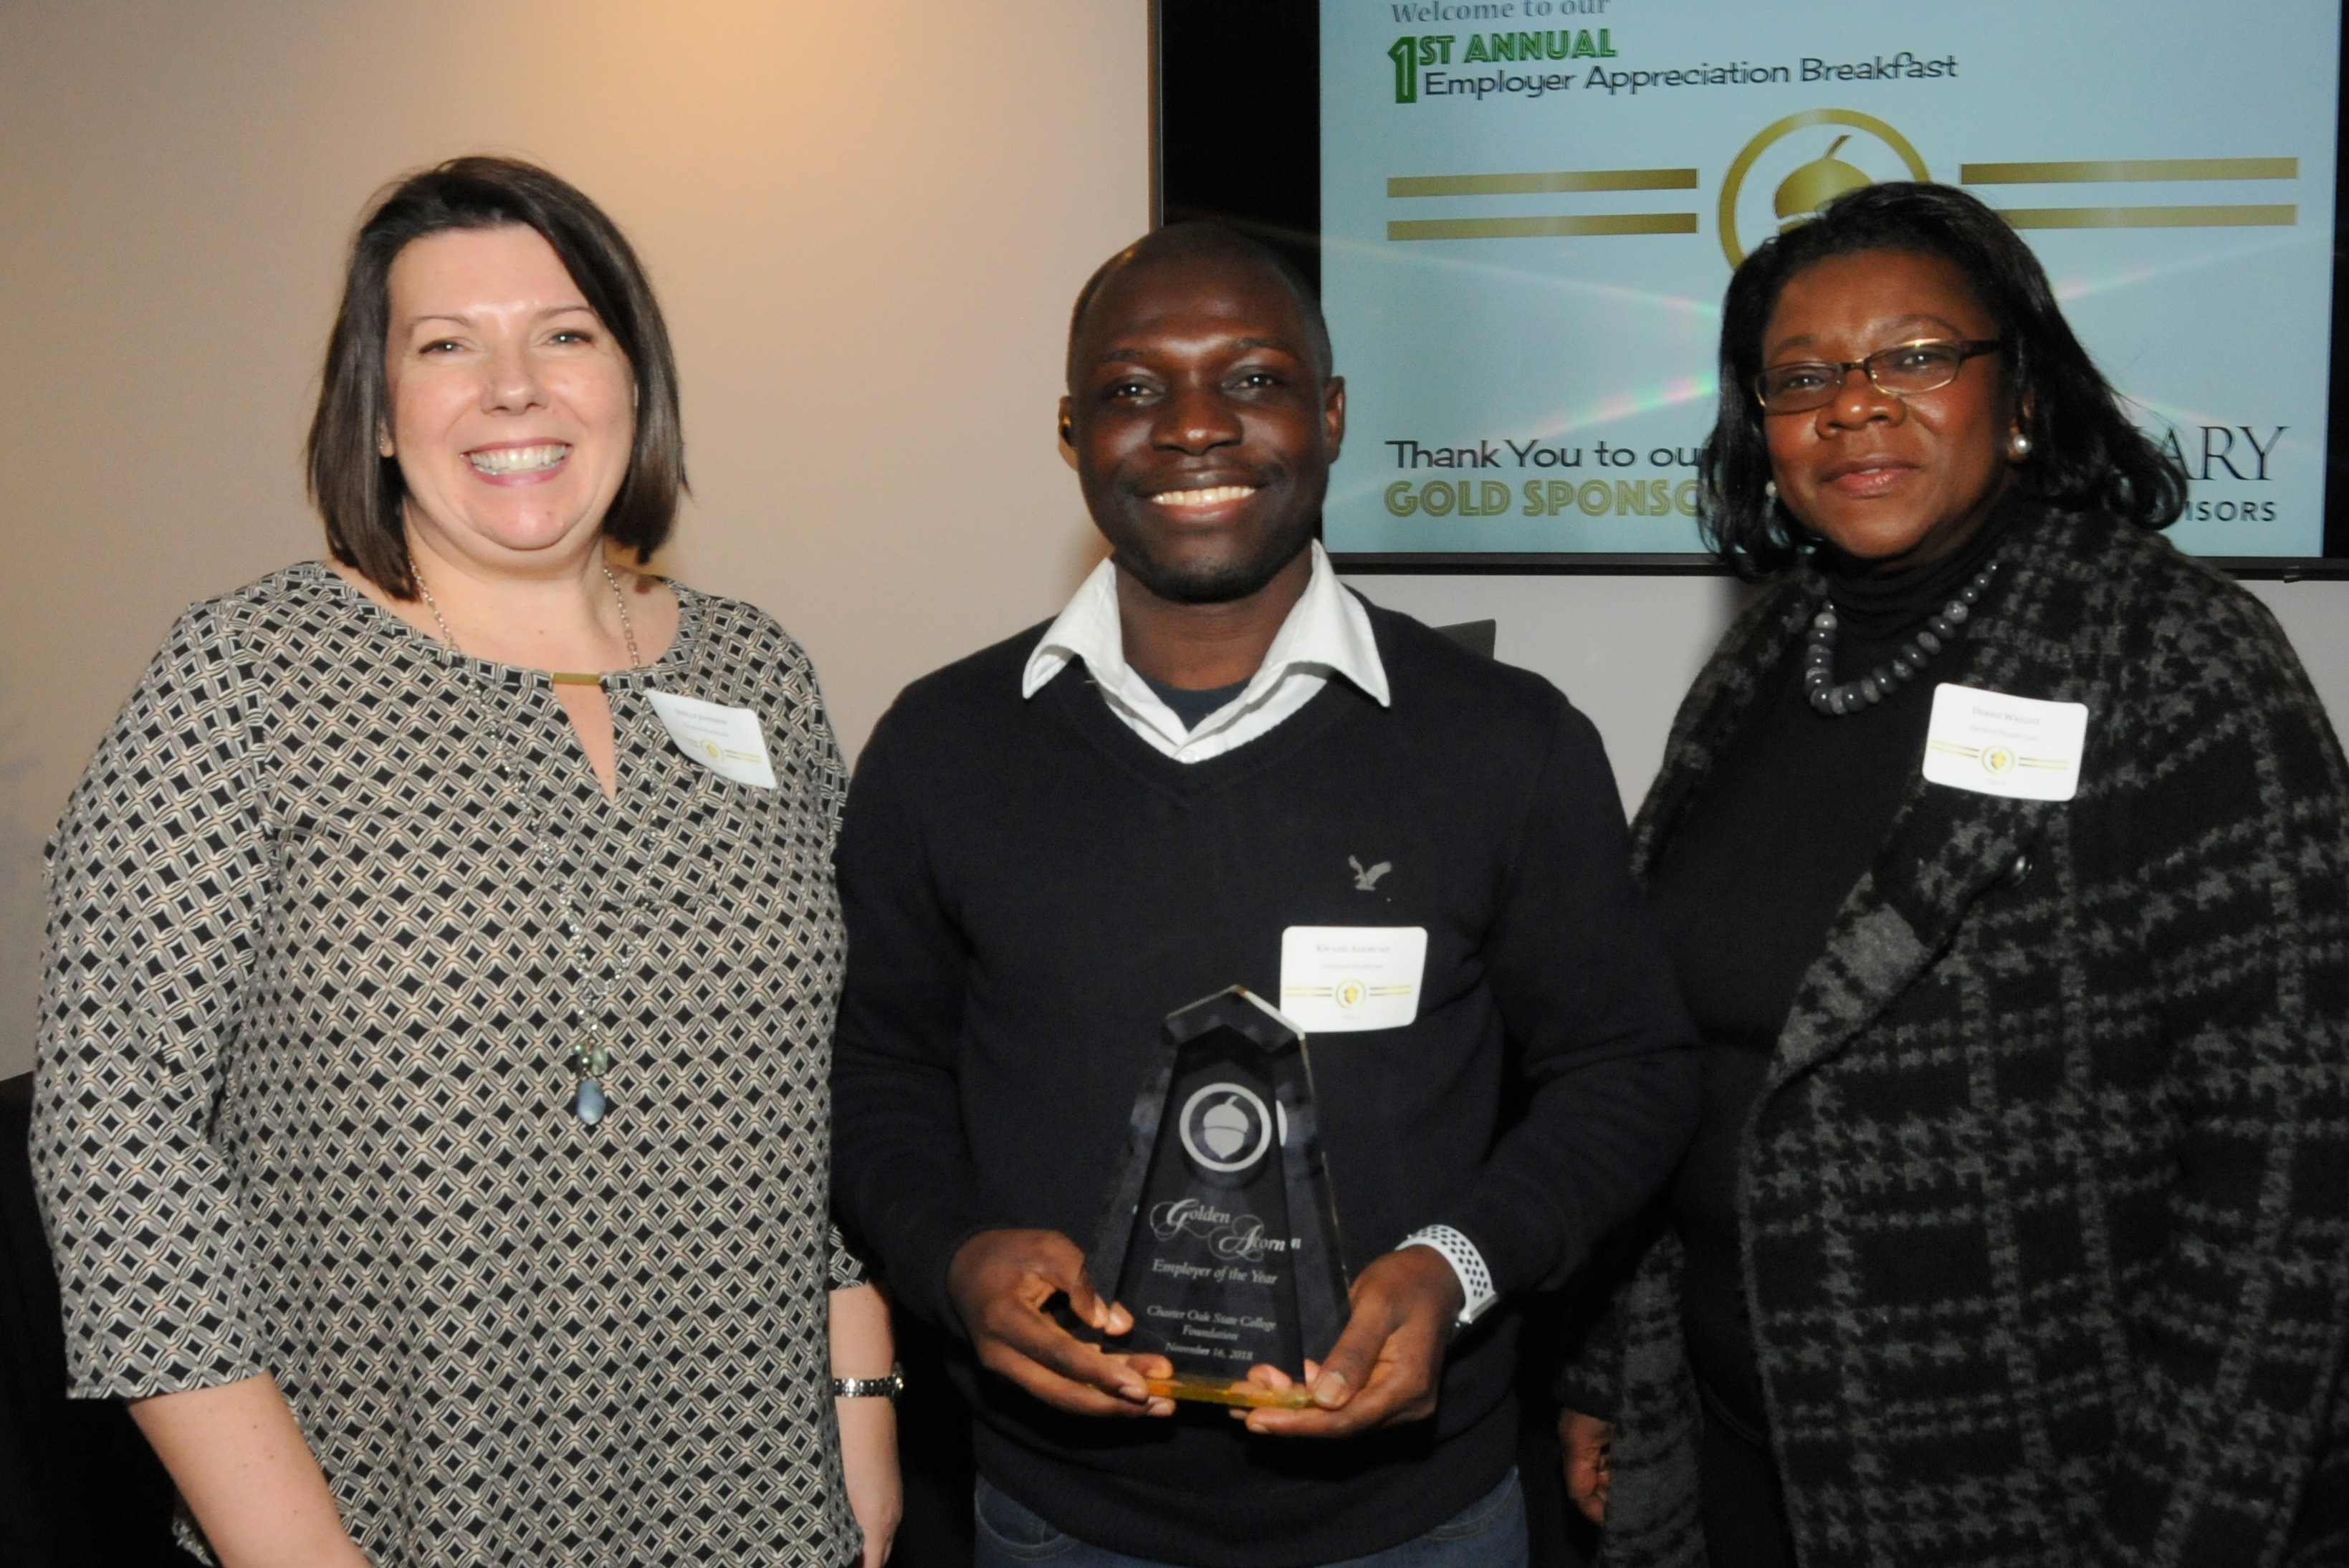 The 2018 Golden Acorn Employer of the Year - Hartford Healthcare!  From left to right, Shelly Johnson, Kwame Asamoah, COSC Student and Scholarship Recipient, Debbi Wright, RHIA, System Director of Health Information Management and Guest Speaker. (Missing from the picture is supervisor, Celia Rodriguez.)